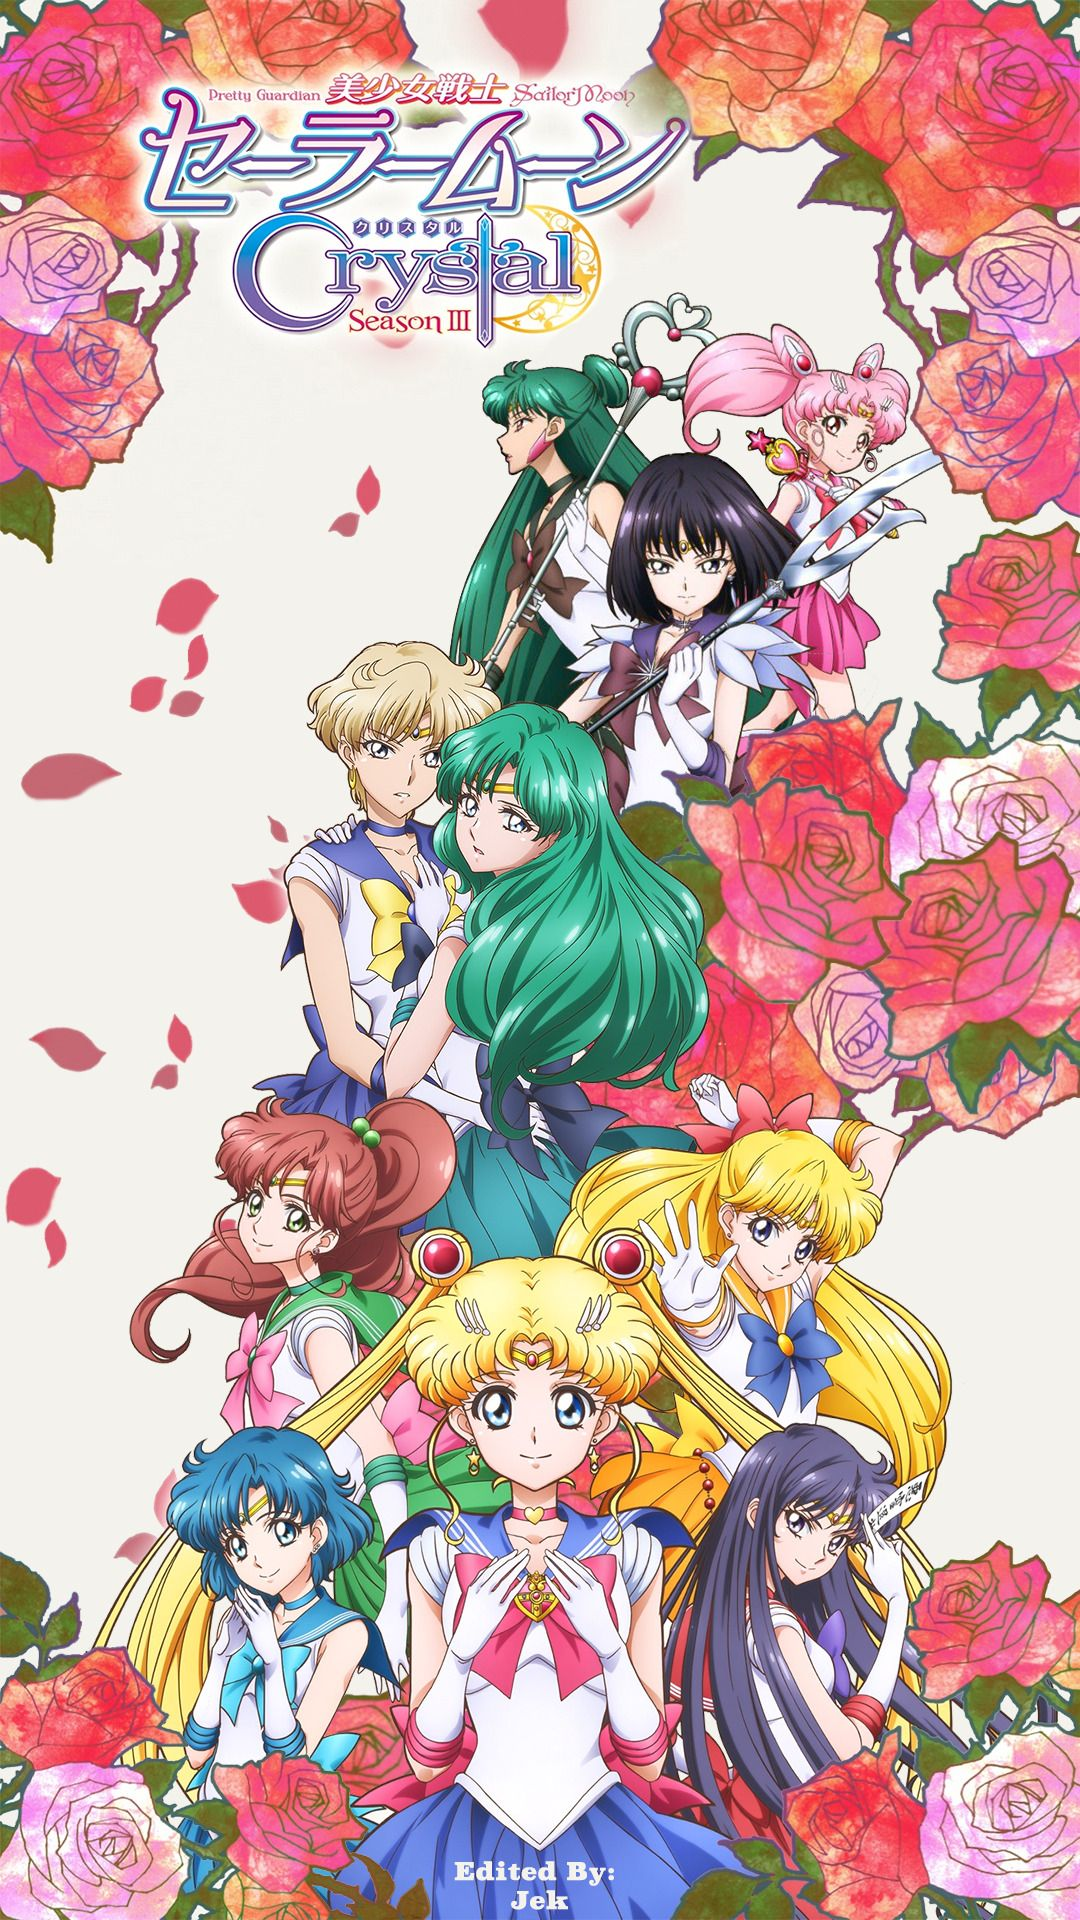 finished sailor moon crystal season 3 iphone wallpaper pm me for the image